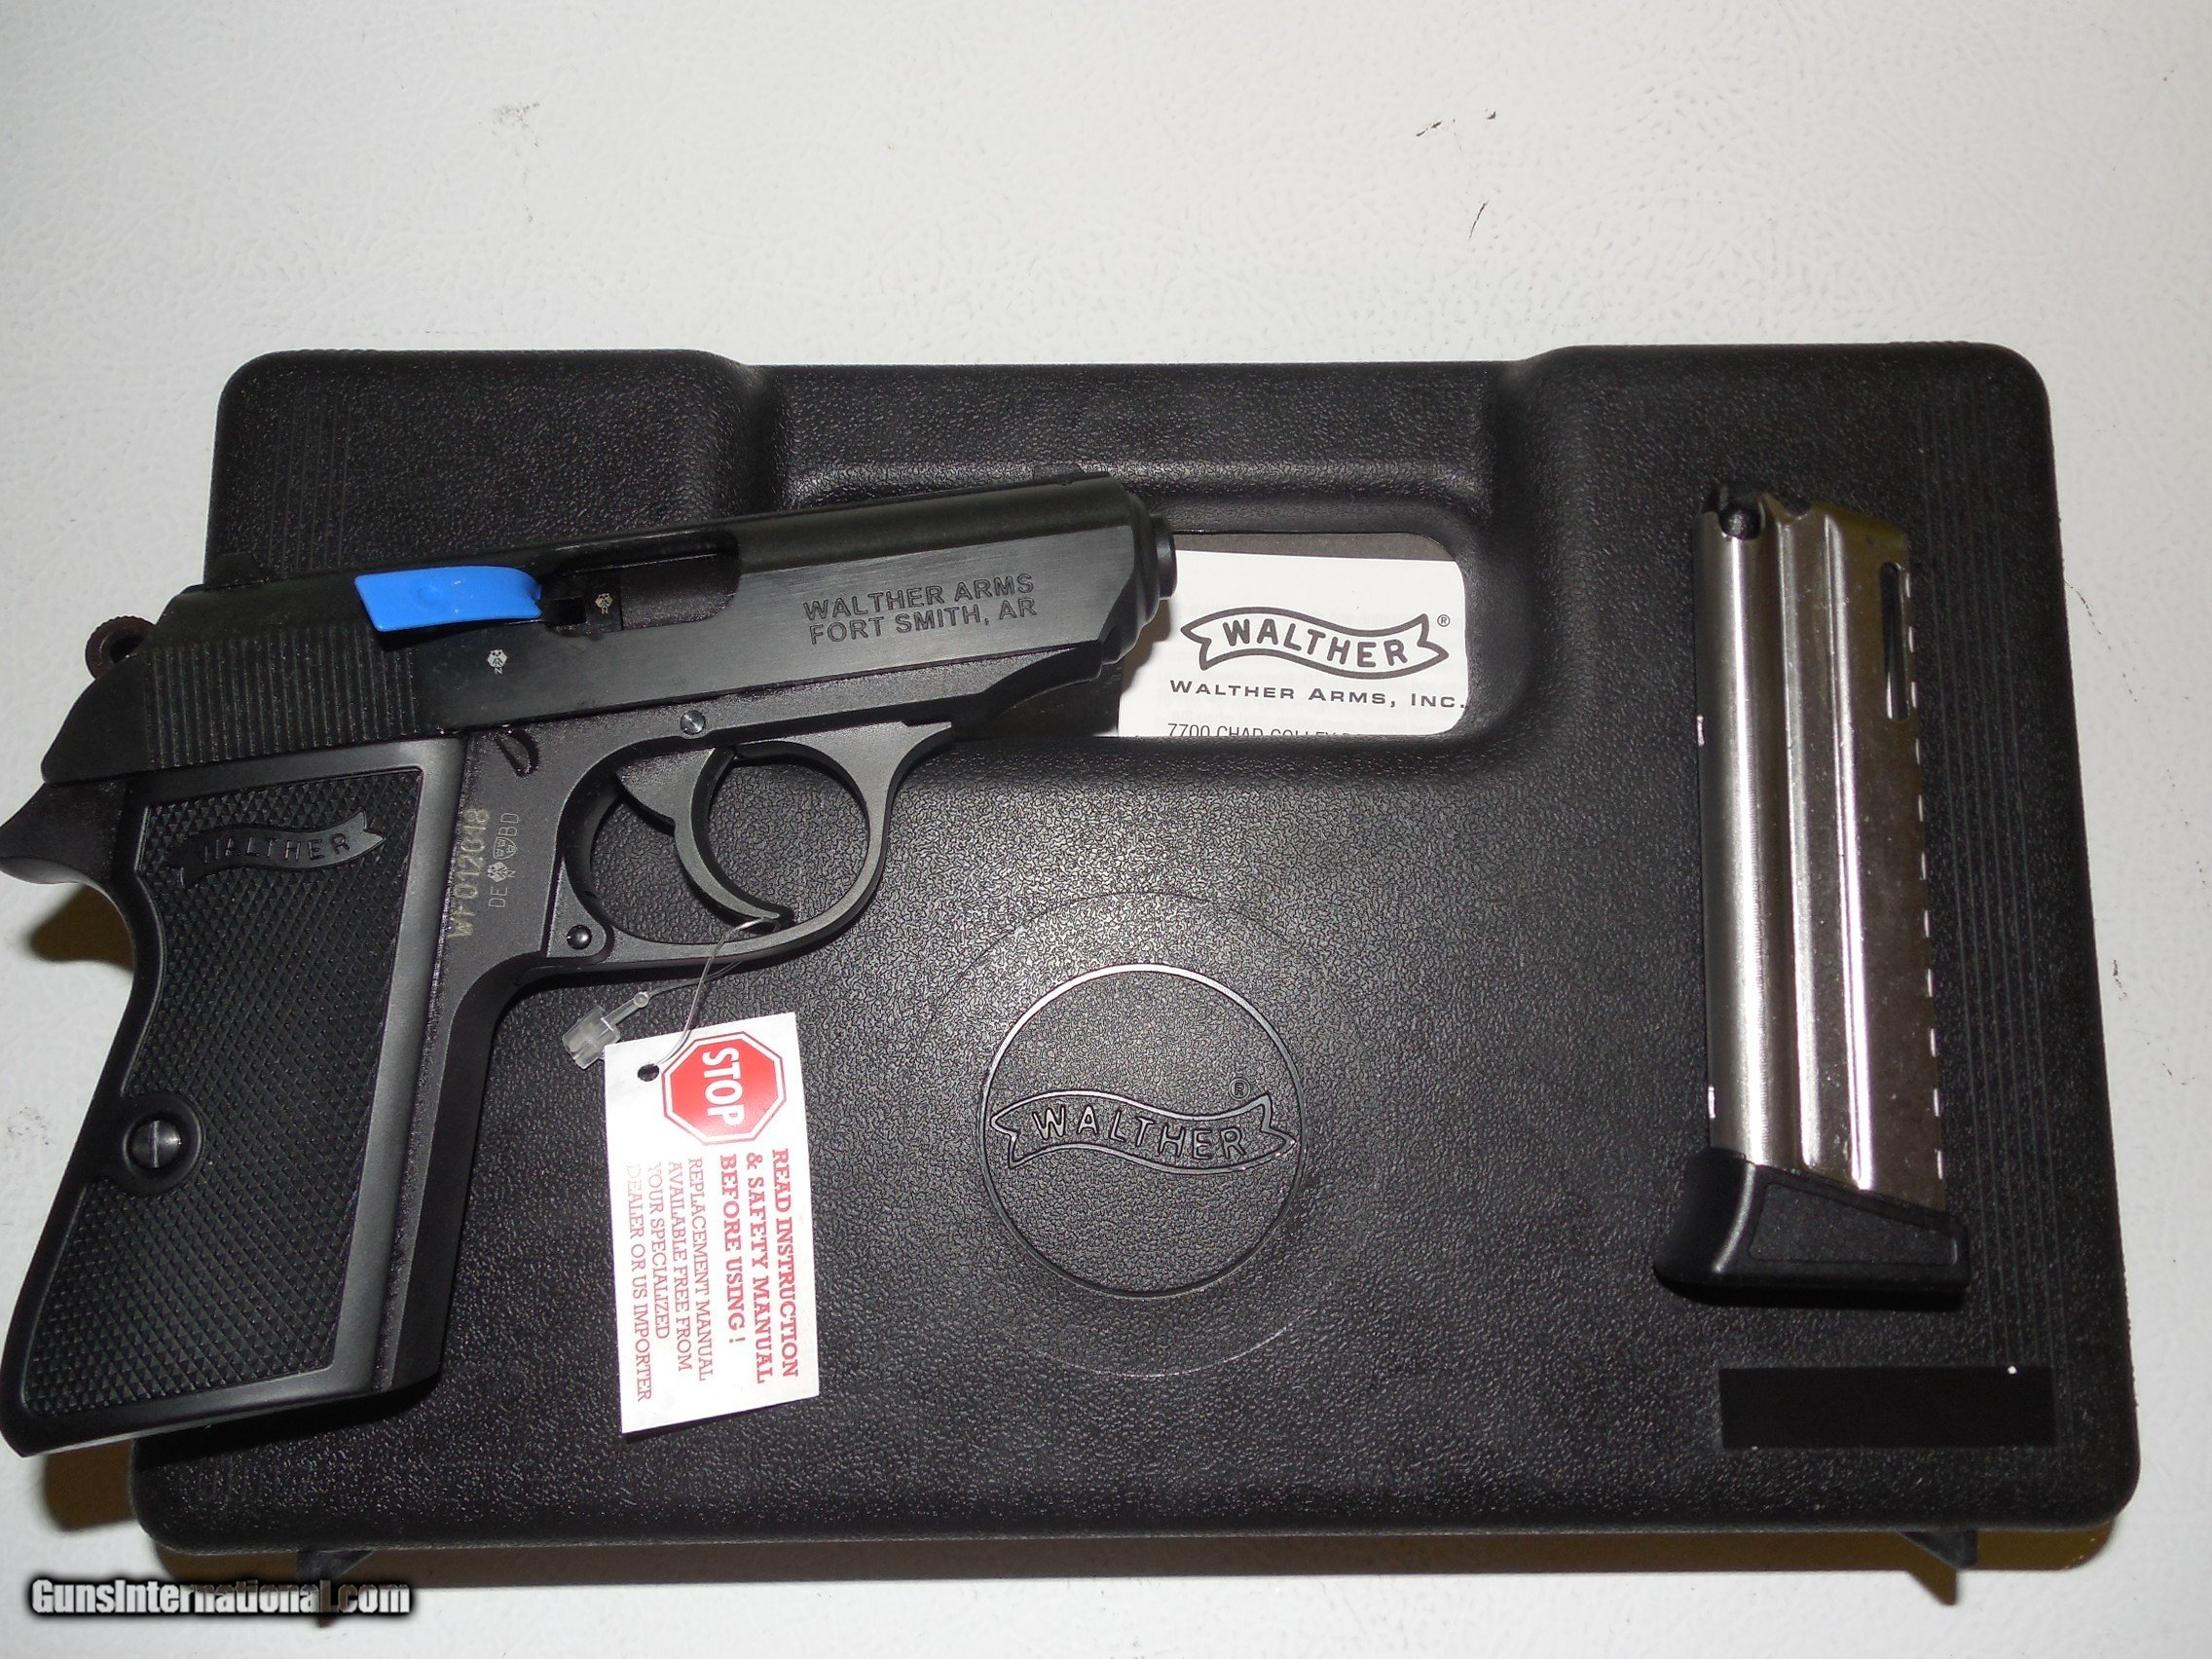 WALTHER PPK/S 22 L R  BLACK MARRE, 10 + 1 ROUND MAGAZINE